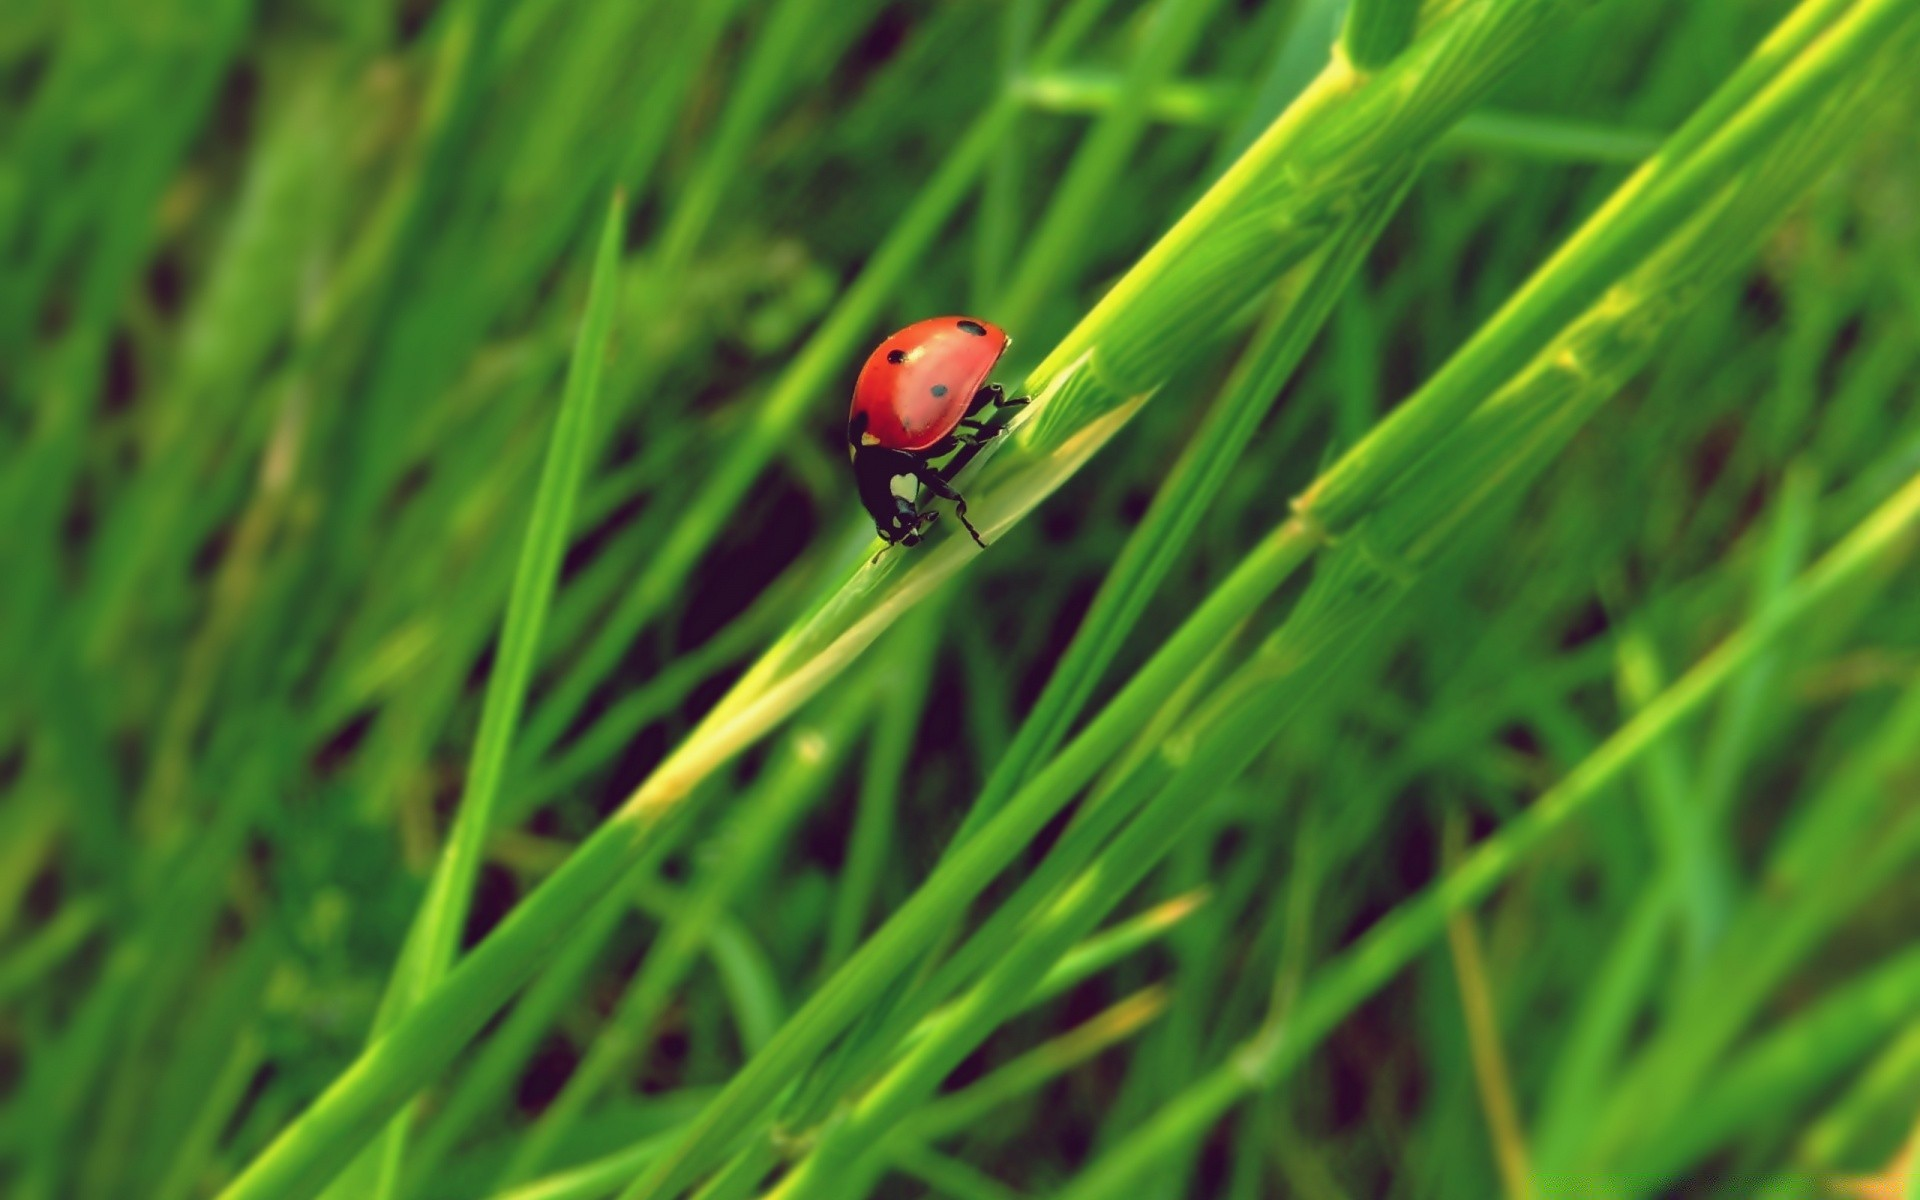 insects grass leaf growth blade flora ladybug nature lawn dew summer environment garden hayfield insect rain biology ecology outdoors drop